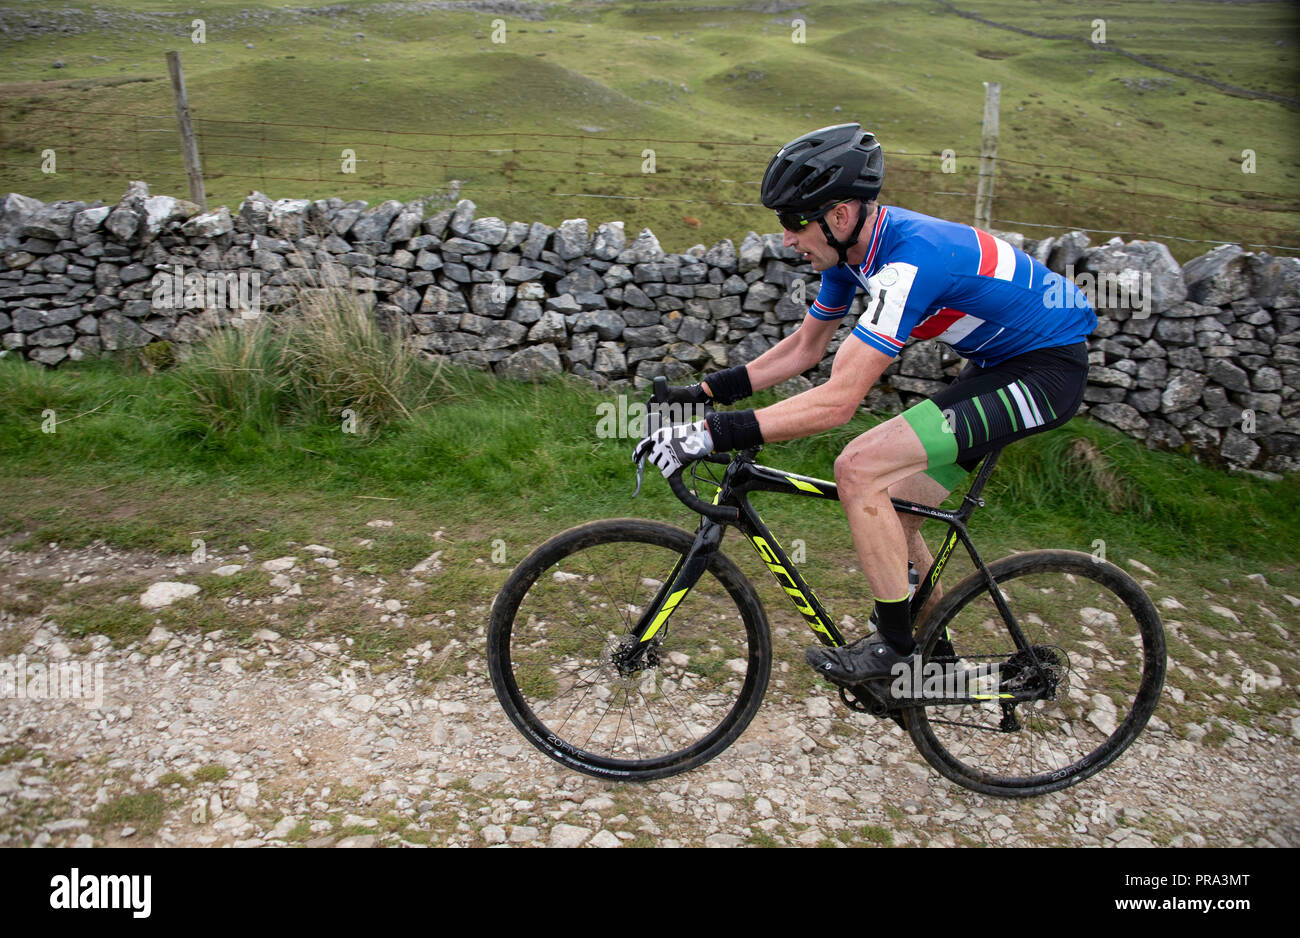 3 Peaks Cyclocross, Yorkshire Dales, UK. - Stock Image